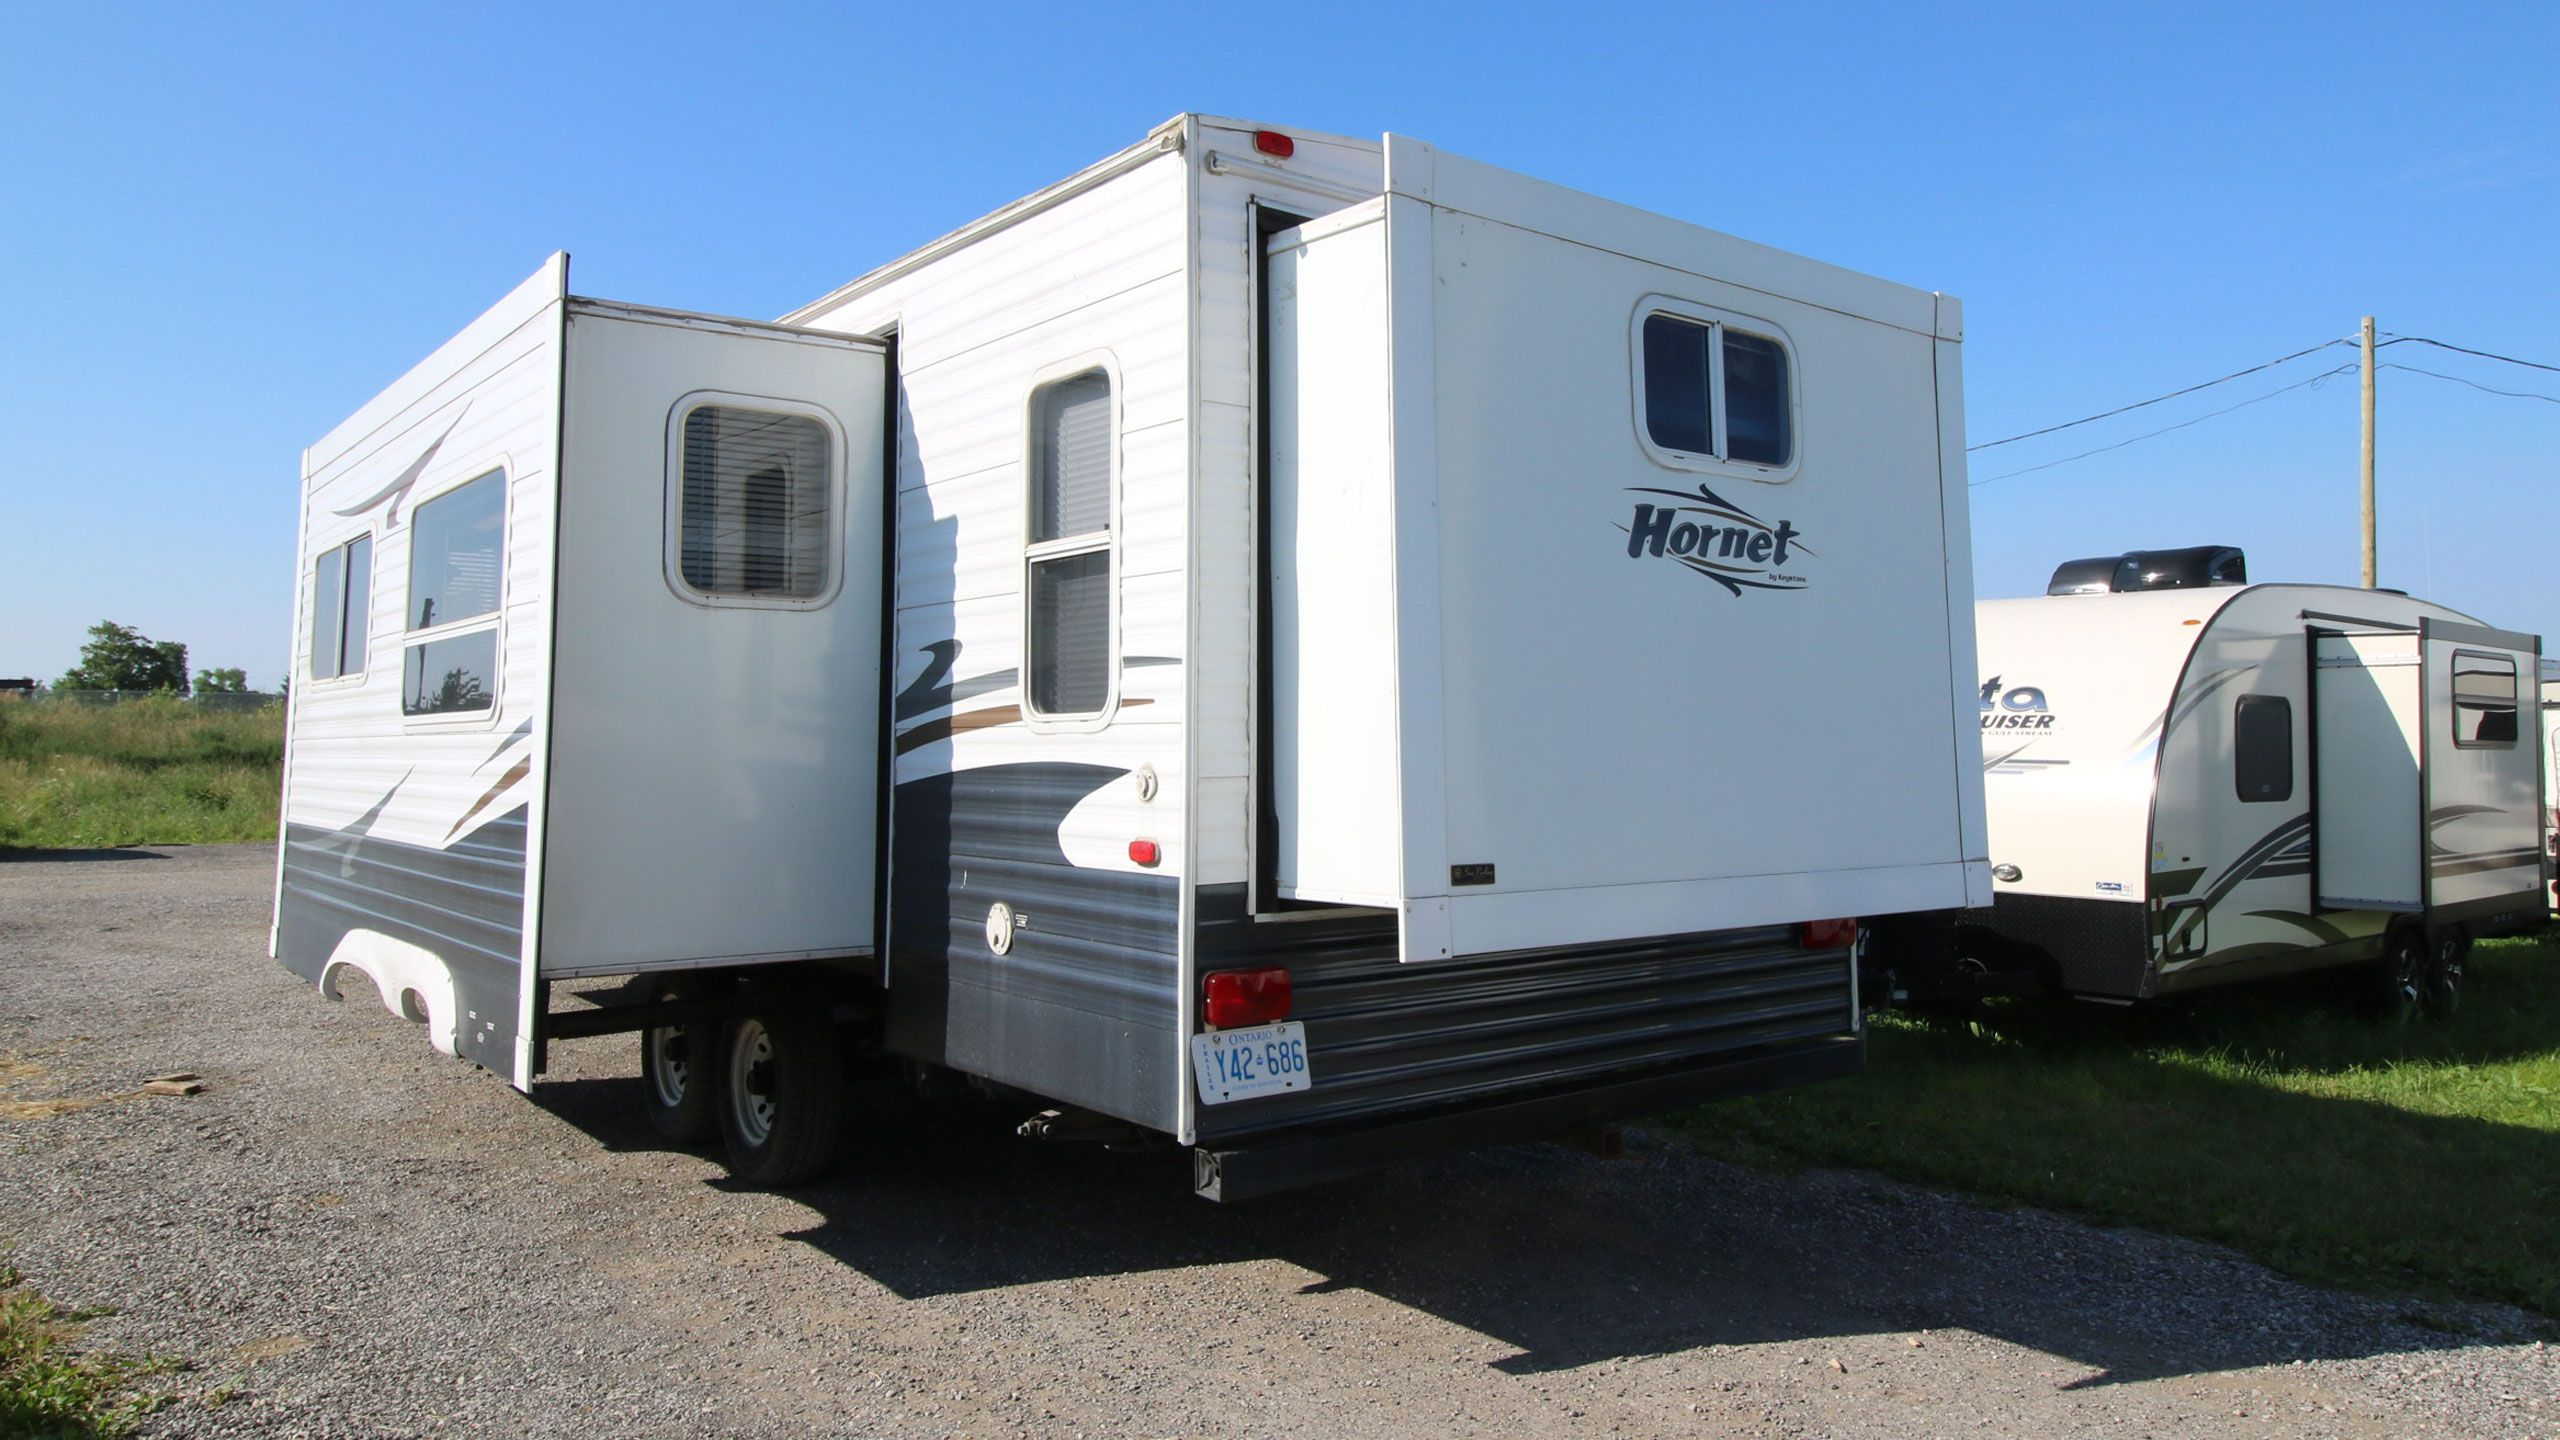 View Can-Am RV Centre RVs for sale | 151 - 160 of 163 units